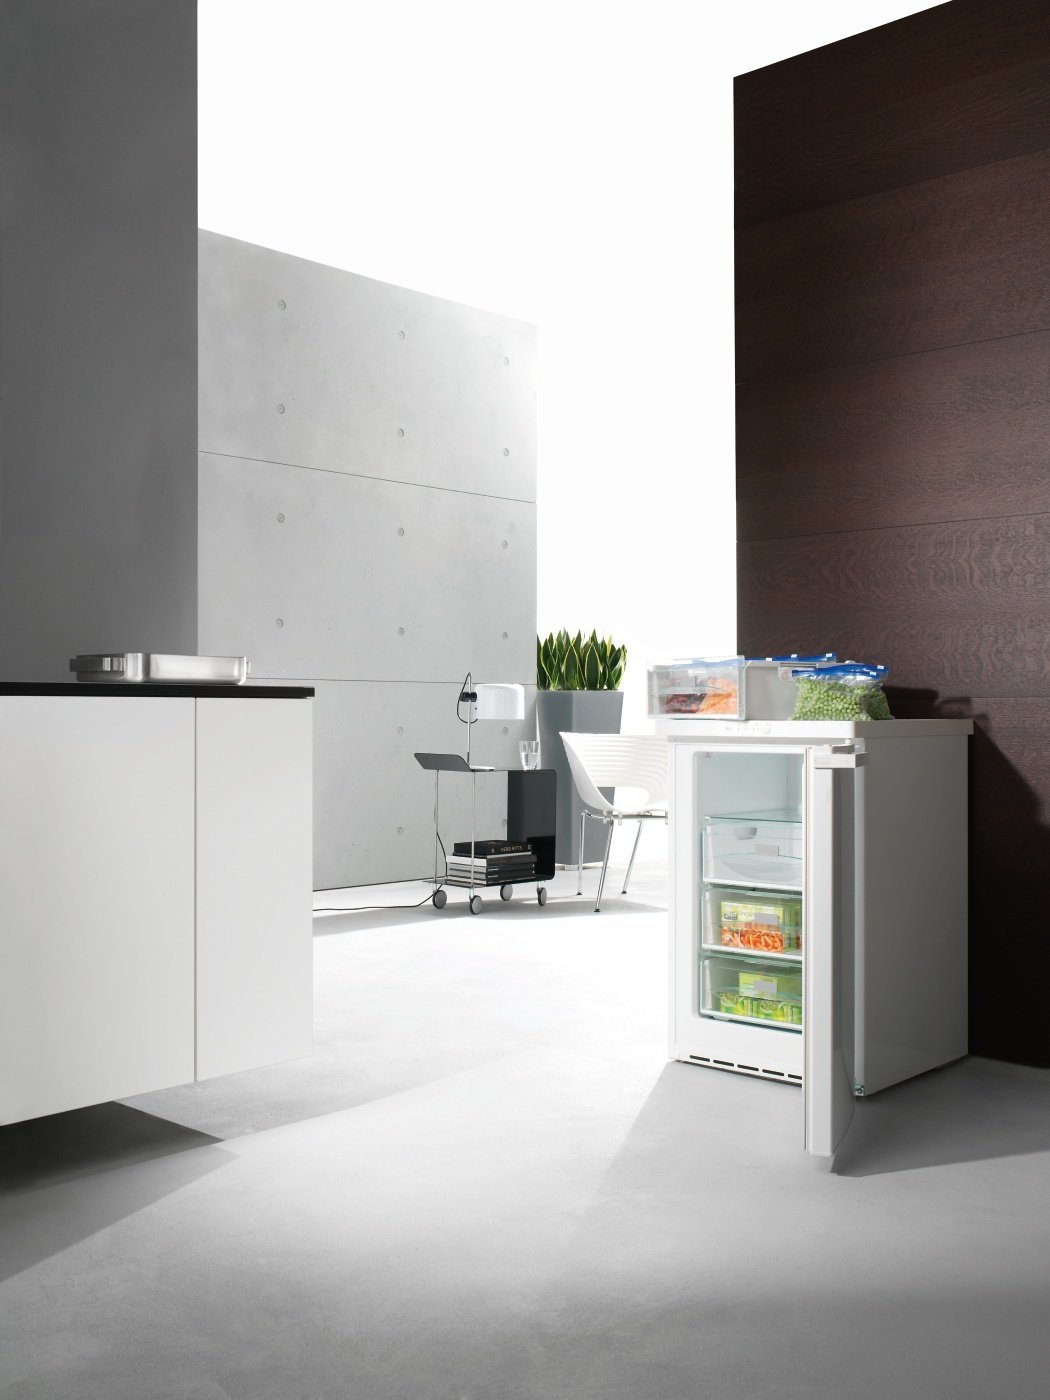 miele mini gefrierschrank vergleich testsieger. Black Bedroom Furniture Sets. Home Design Ideas